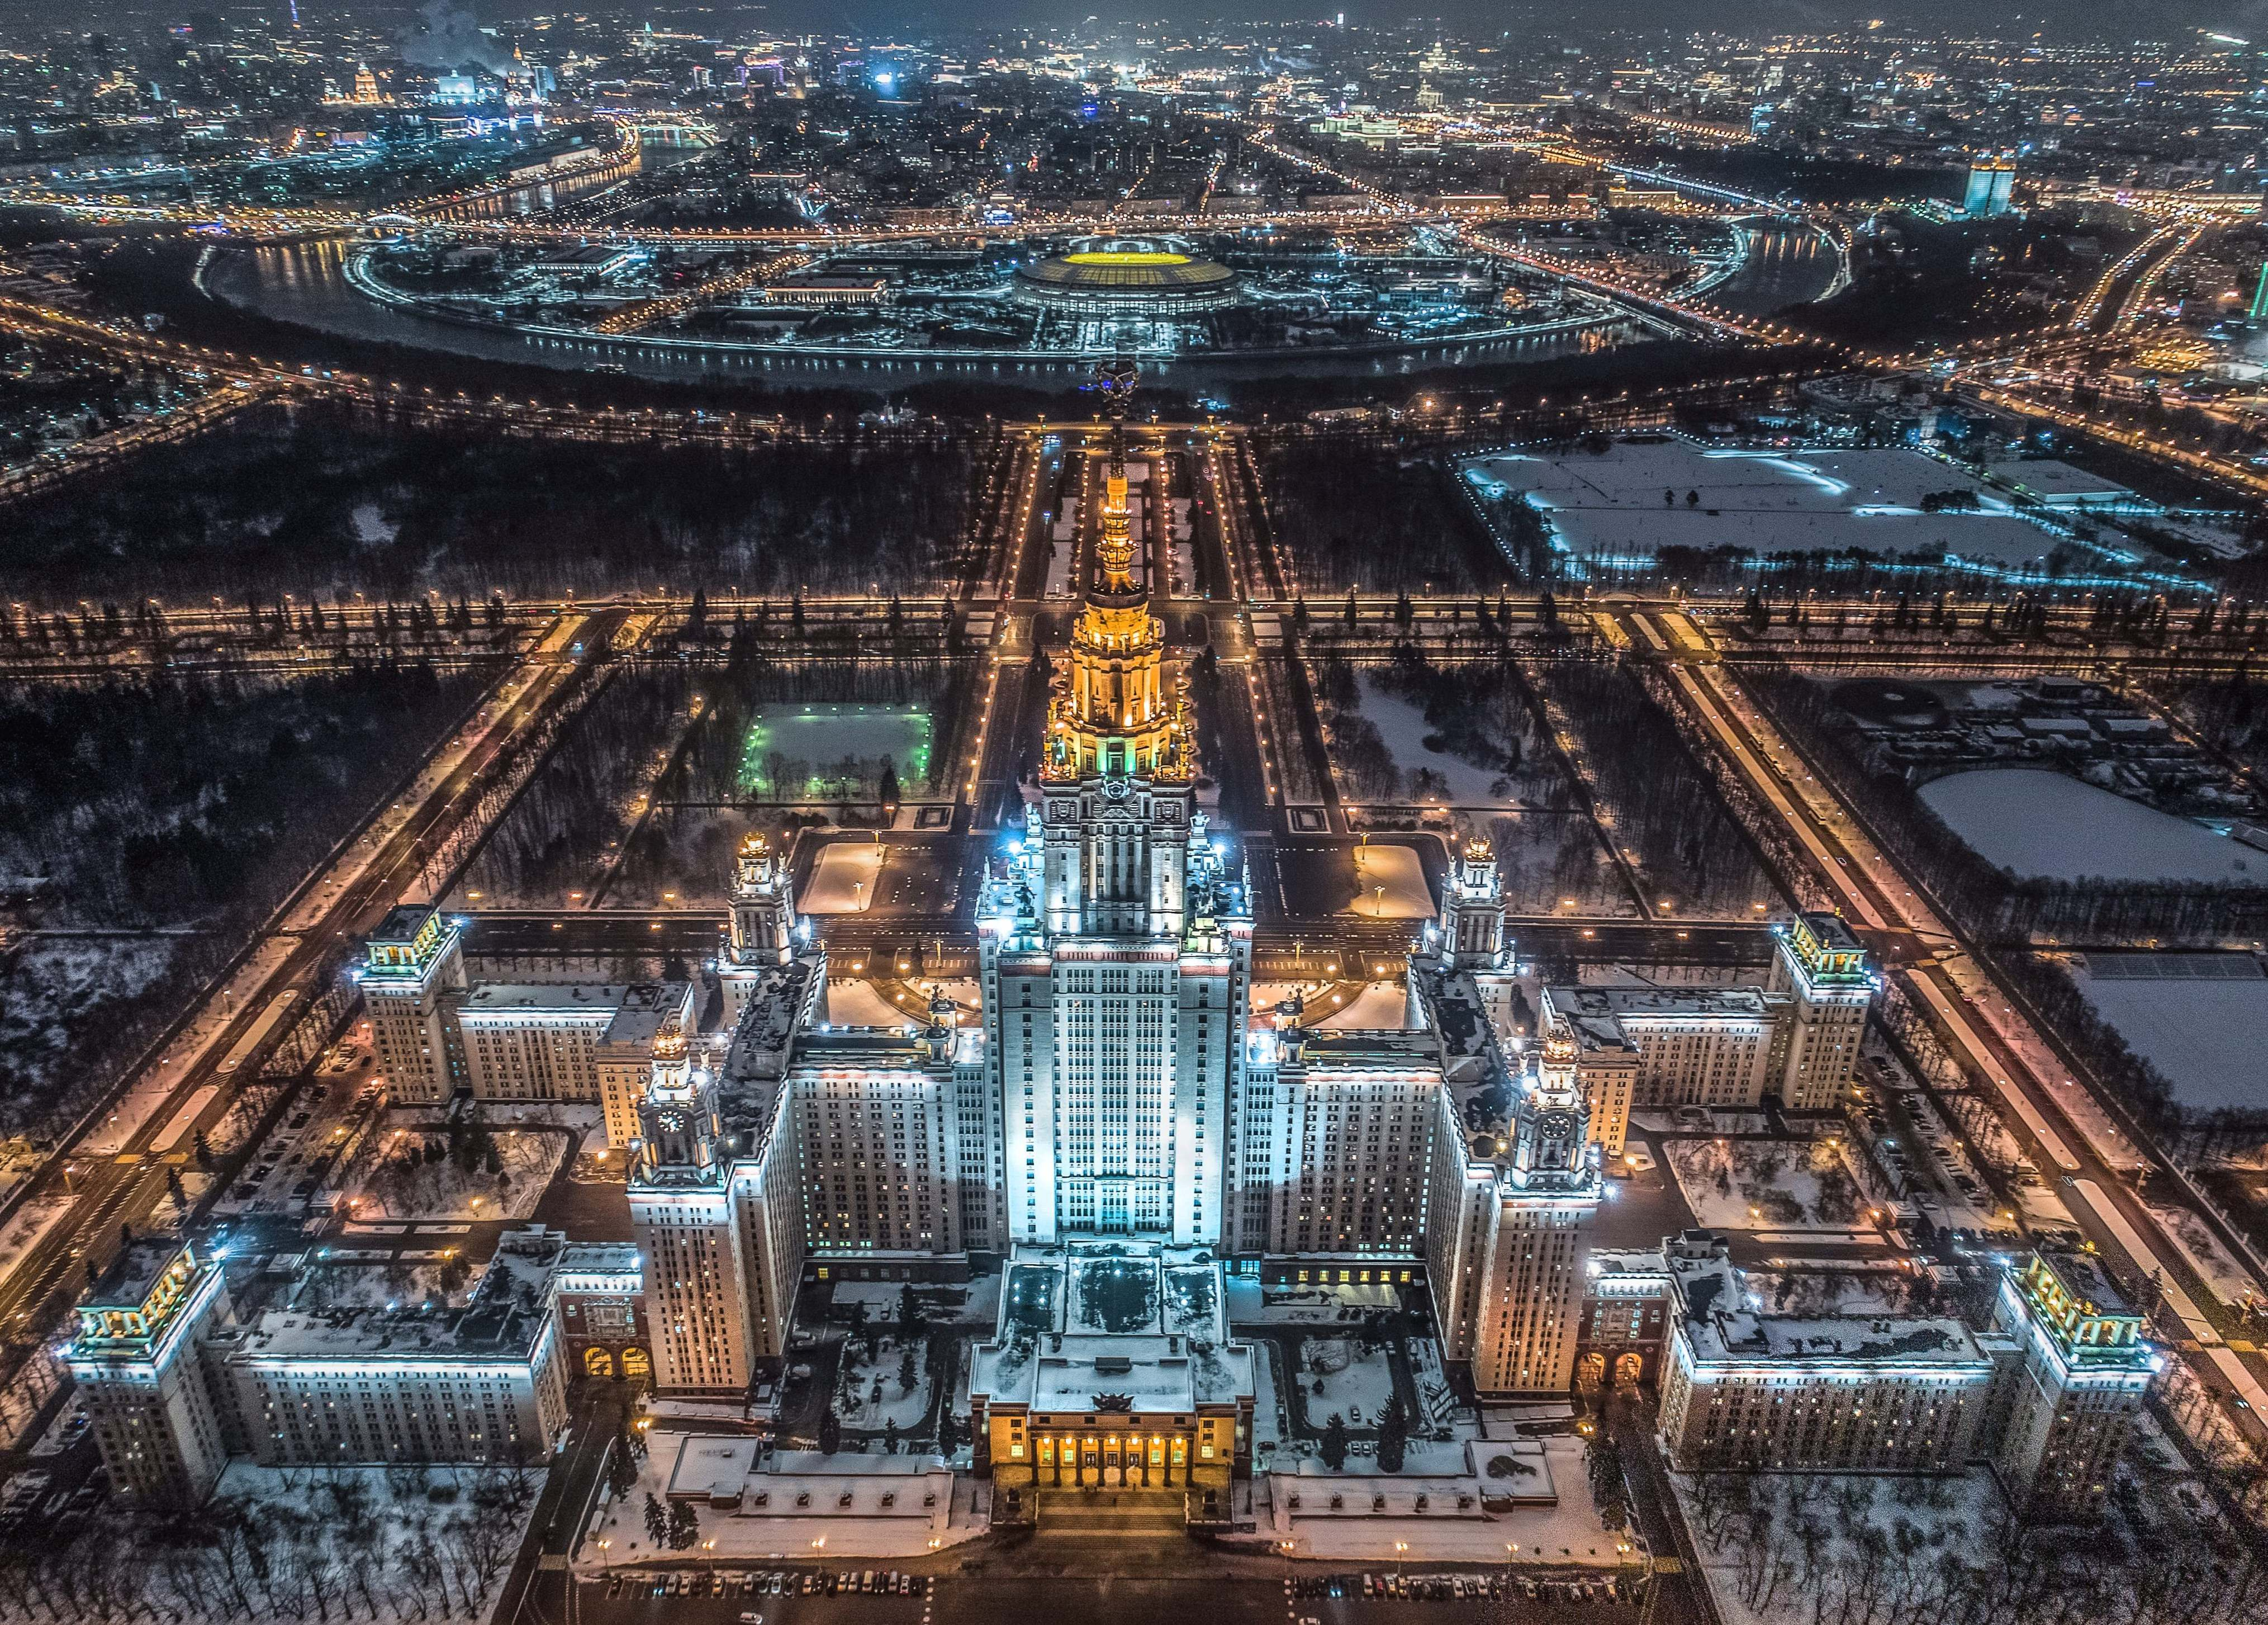 Slide 49 of 73: CAPTION: An aerial view taken with a drone in Moscow on January 27, 2018 shows the main building of the Moscow State University, Luzhniki Stadium and the Moskva River. / AFP PHOTO / Dmitry SEREBRYAKOV (Photo credit should read DMITRY SEREBRYAKOV/AFP/Getty Images)